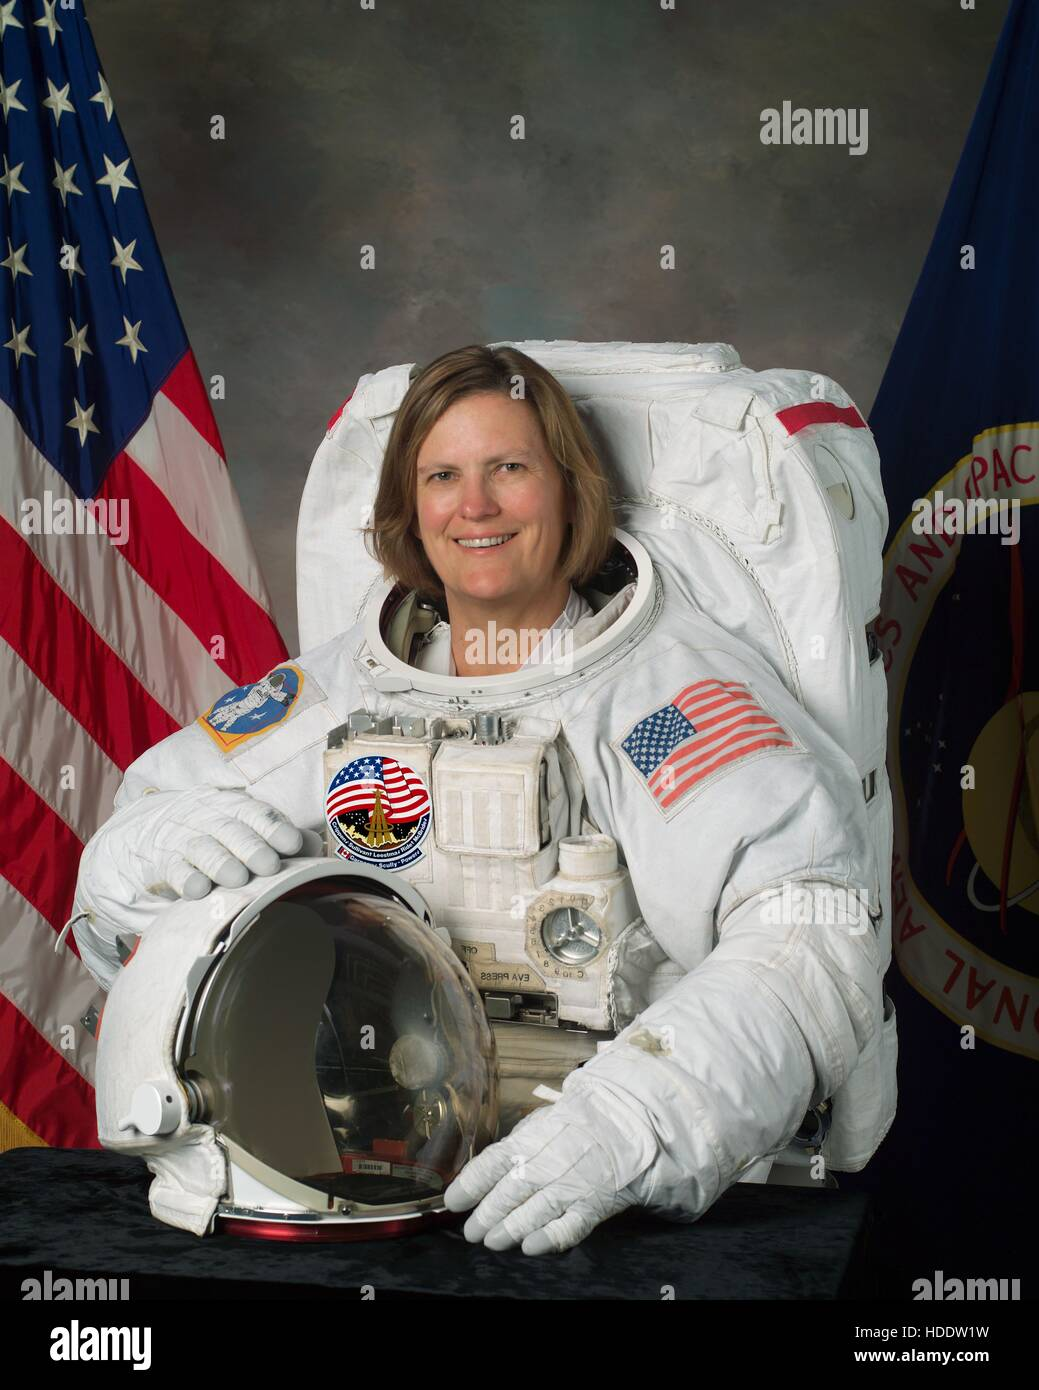 Official NASA portrait of astronaut Kathy Sullivan, posing in a spacesuit at the Johnson Space Center July 25, 2003 - Stock Image